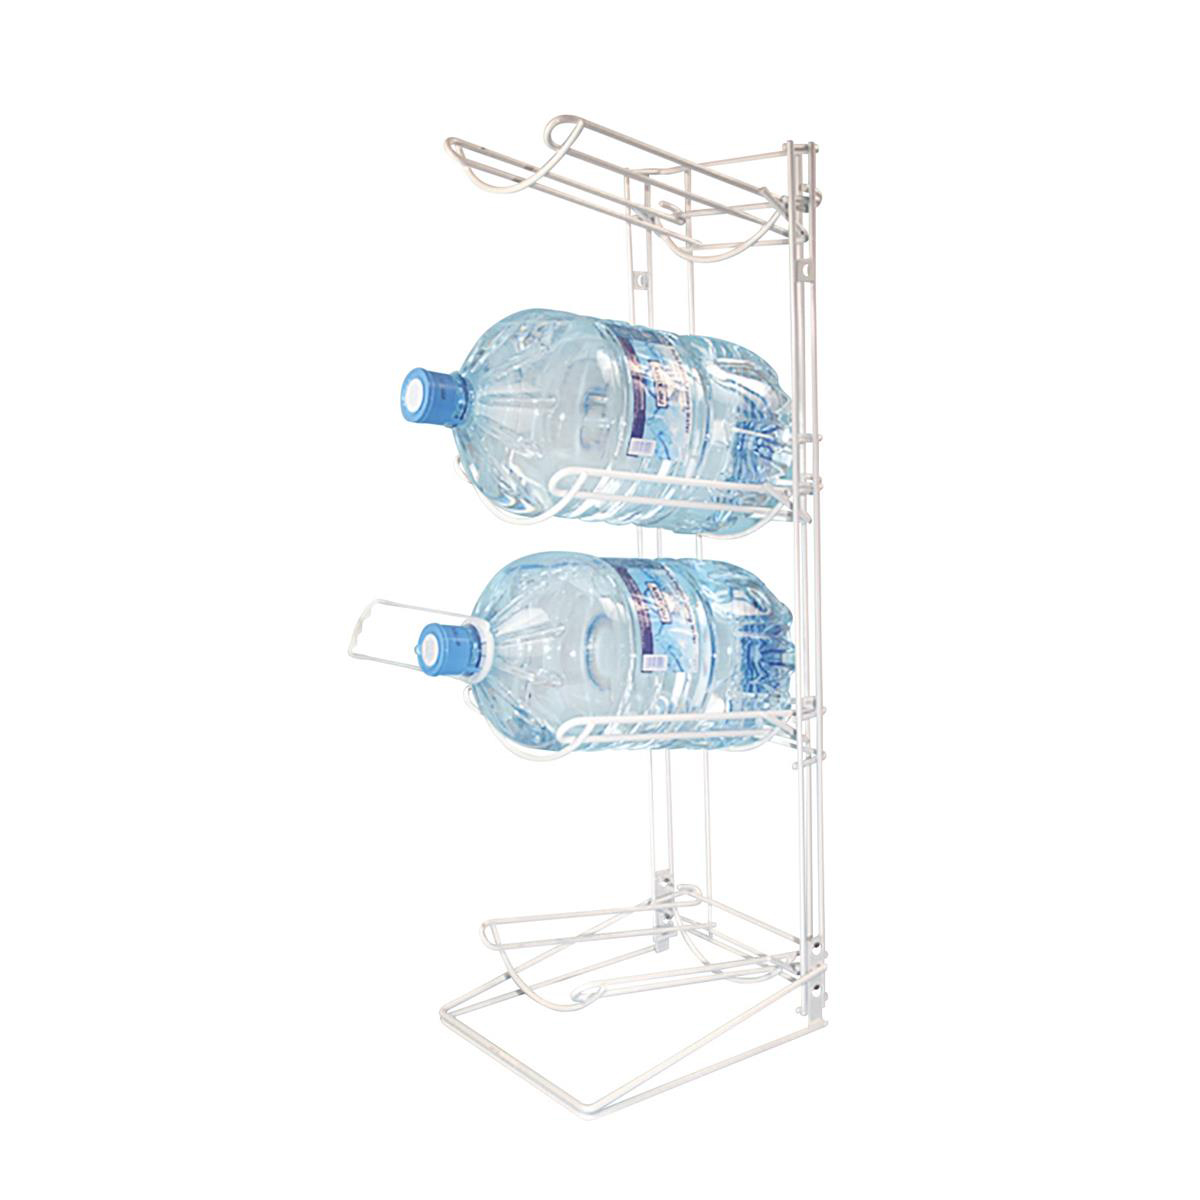 Water Machines & Accessories Water Bottle Storage Rack for Four Bottles WxDxH: 310x467x1063mm